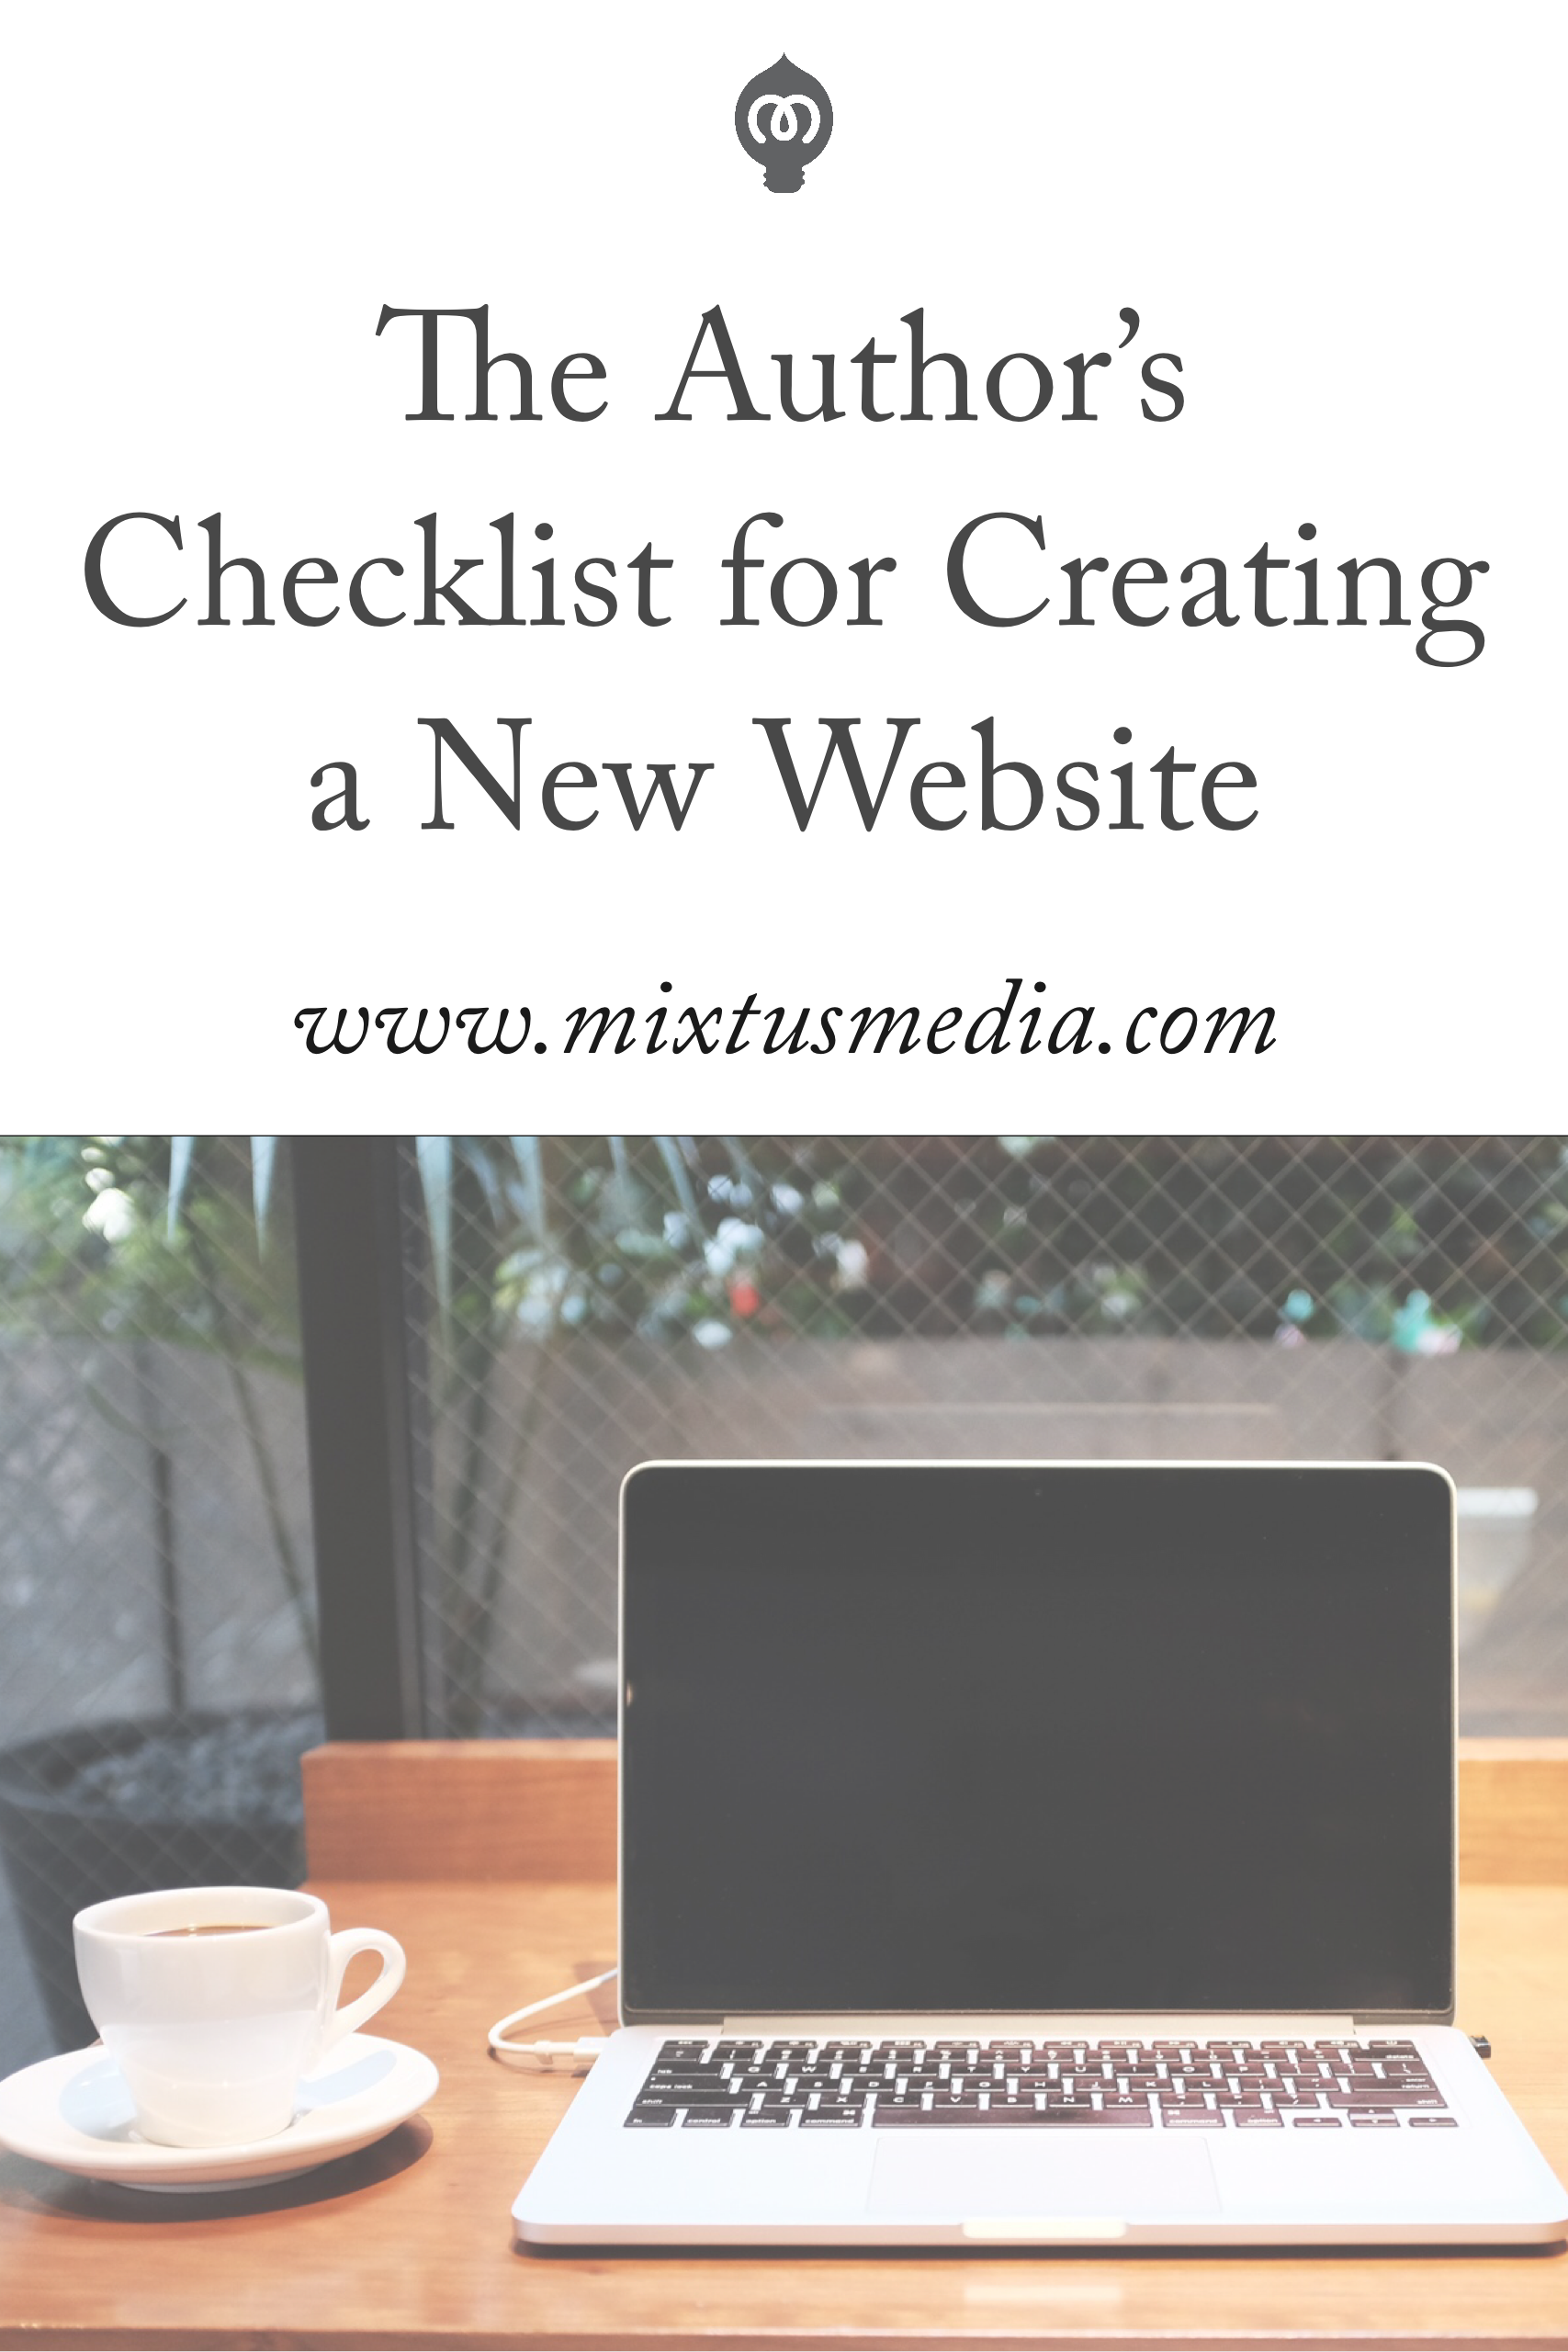 Your Checklist For Creating A New Website